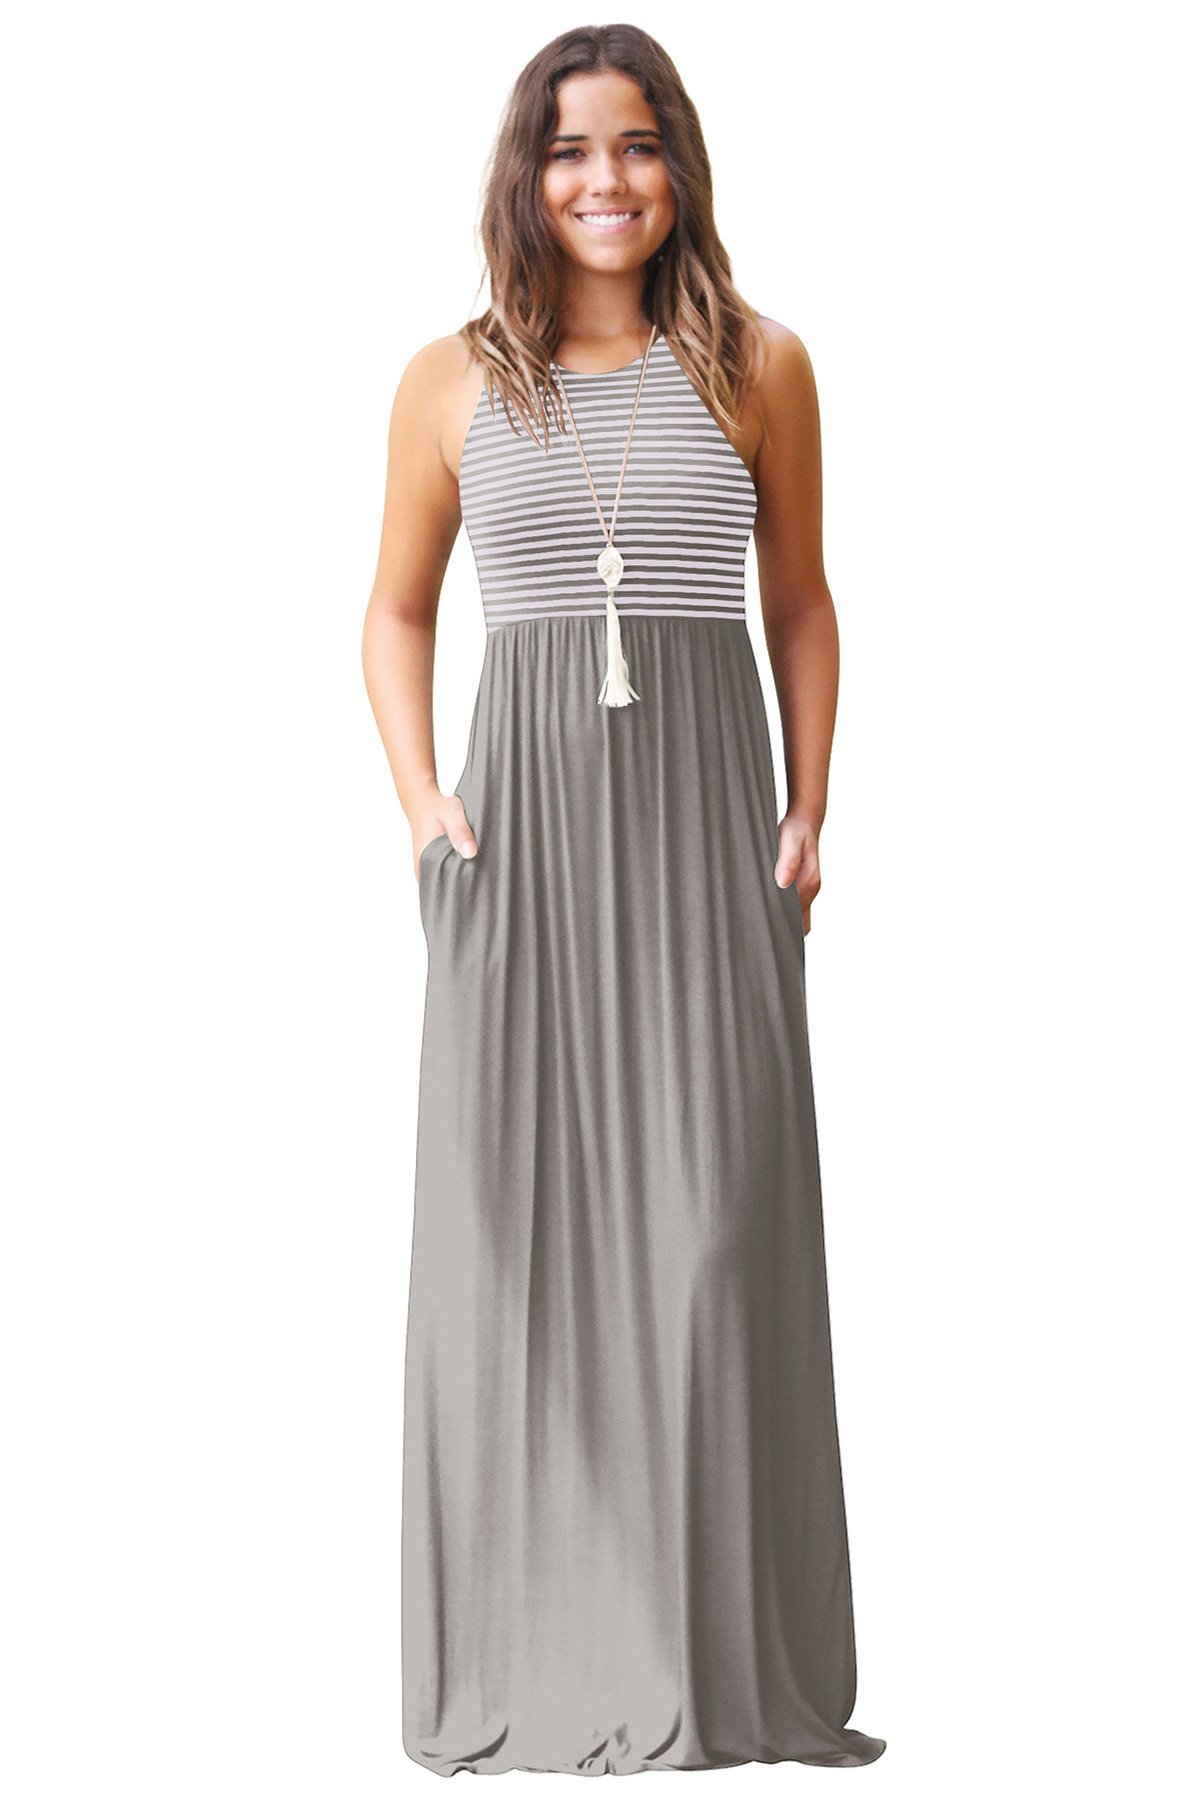 JOXJOZ Women's Sleeveless Racerback Loose Striped Maxi Dresses Casual Long Party Dresses with Pockets (Grey, L)